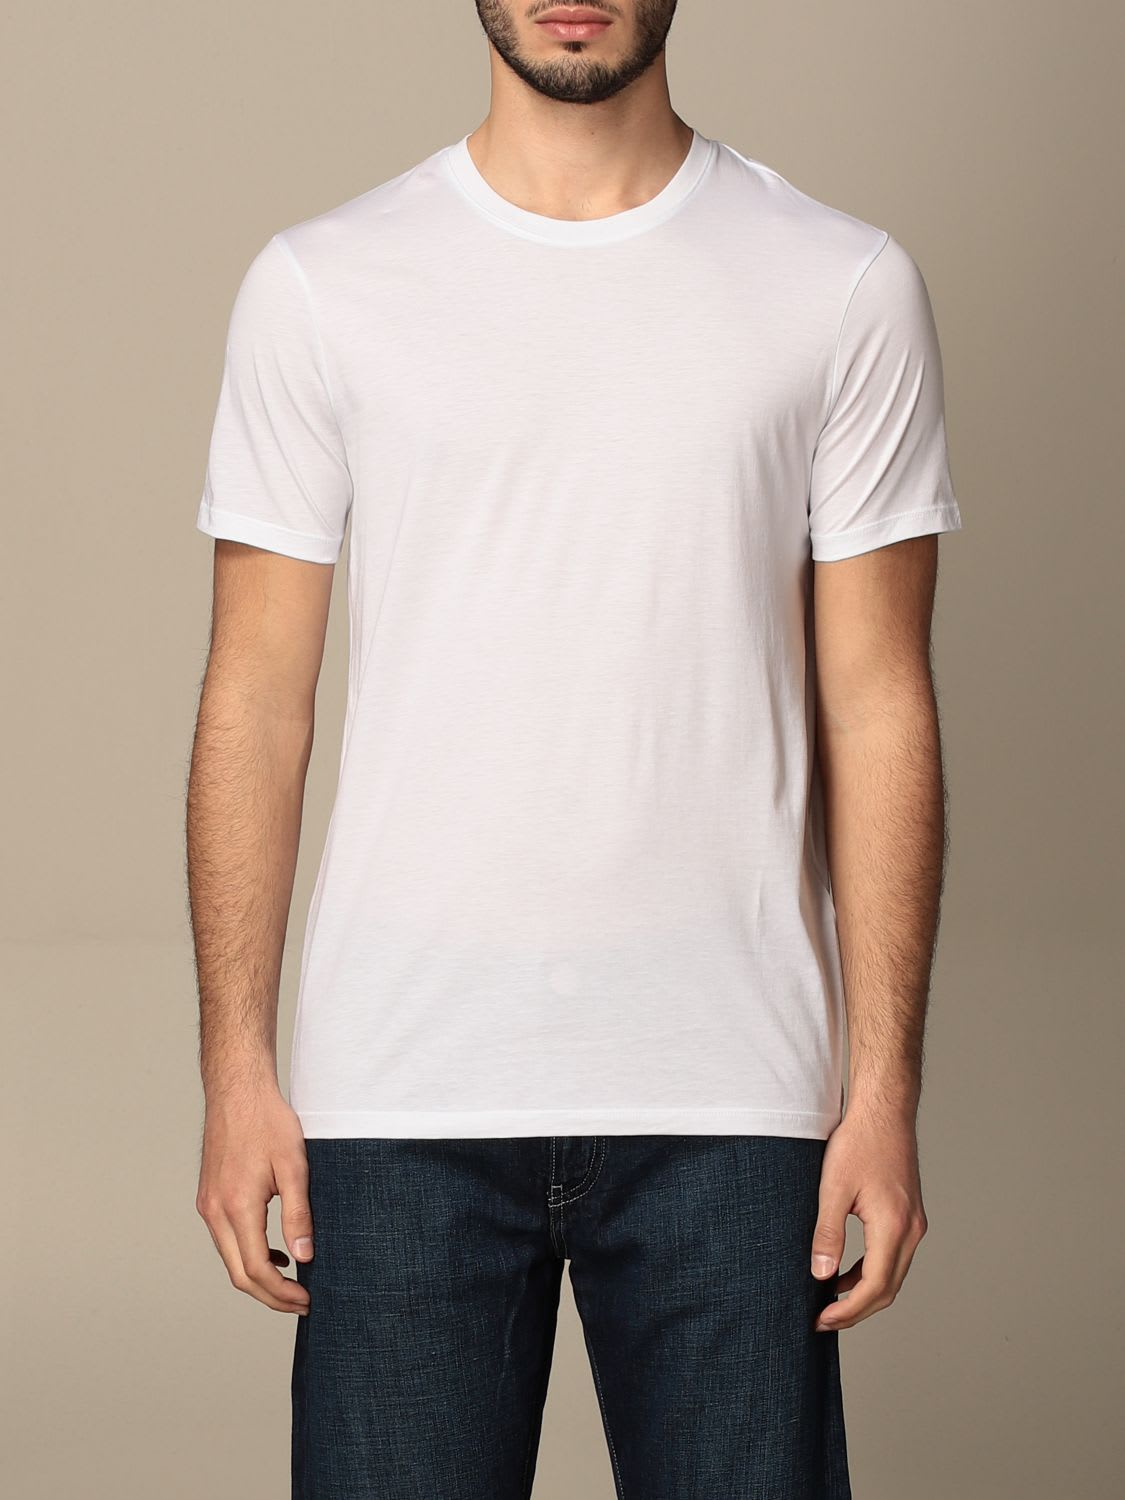 Armani Exchange T-shirt Armani Exchange Basic Cotton T-shirt